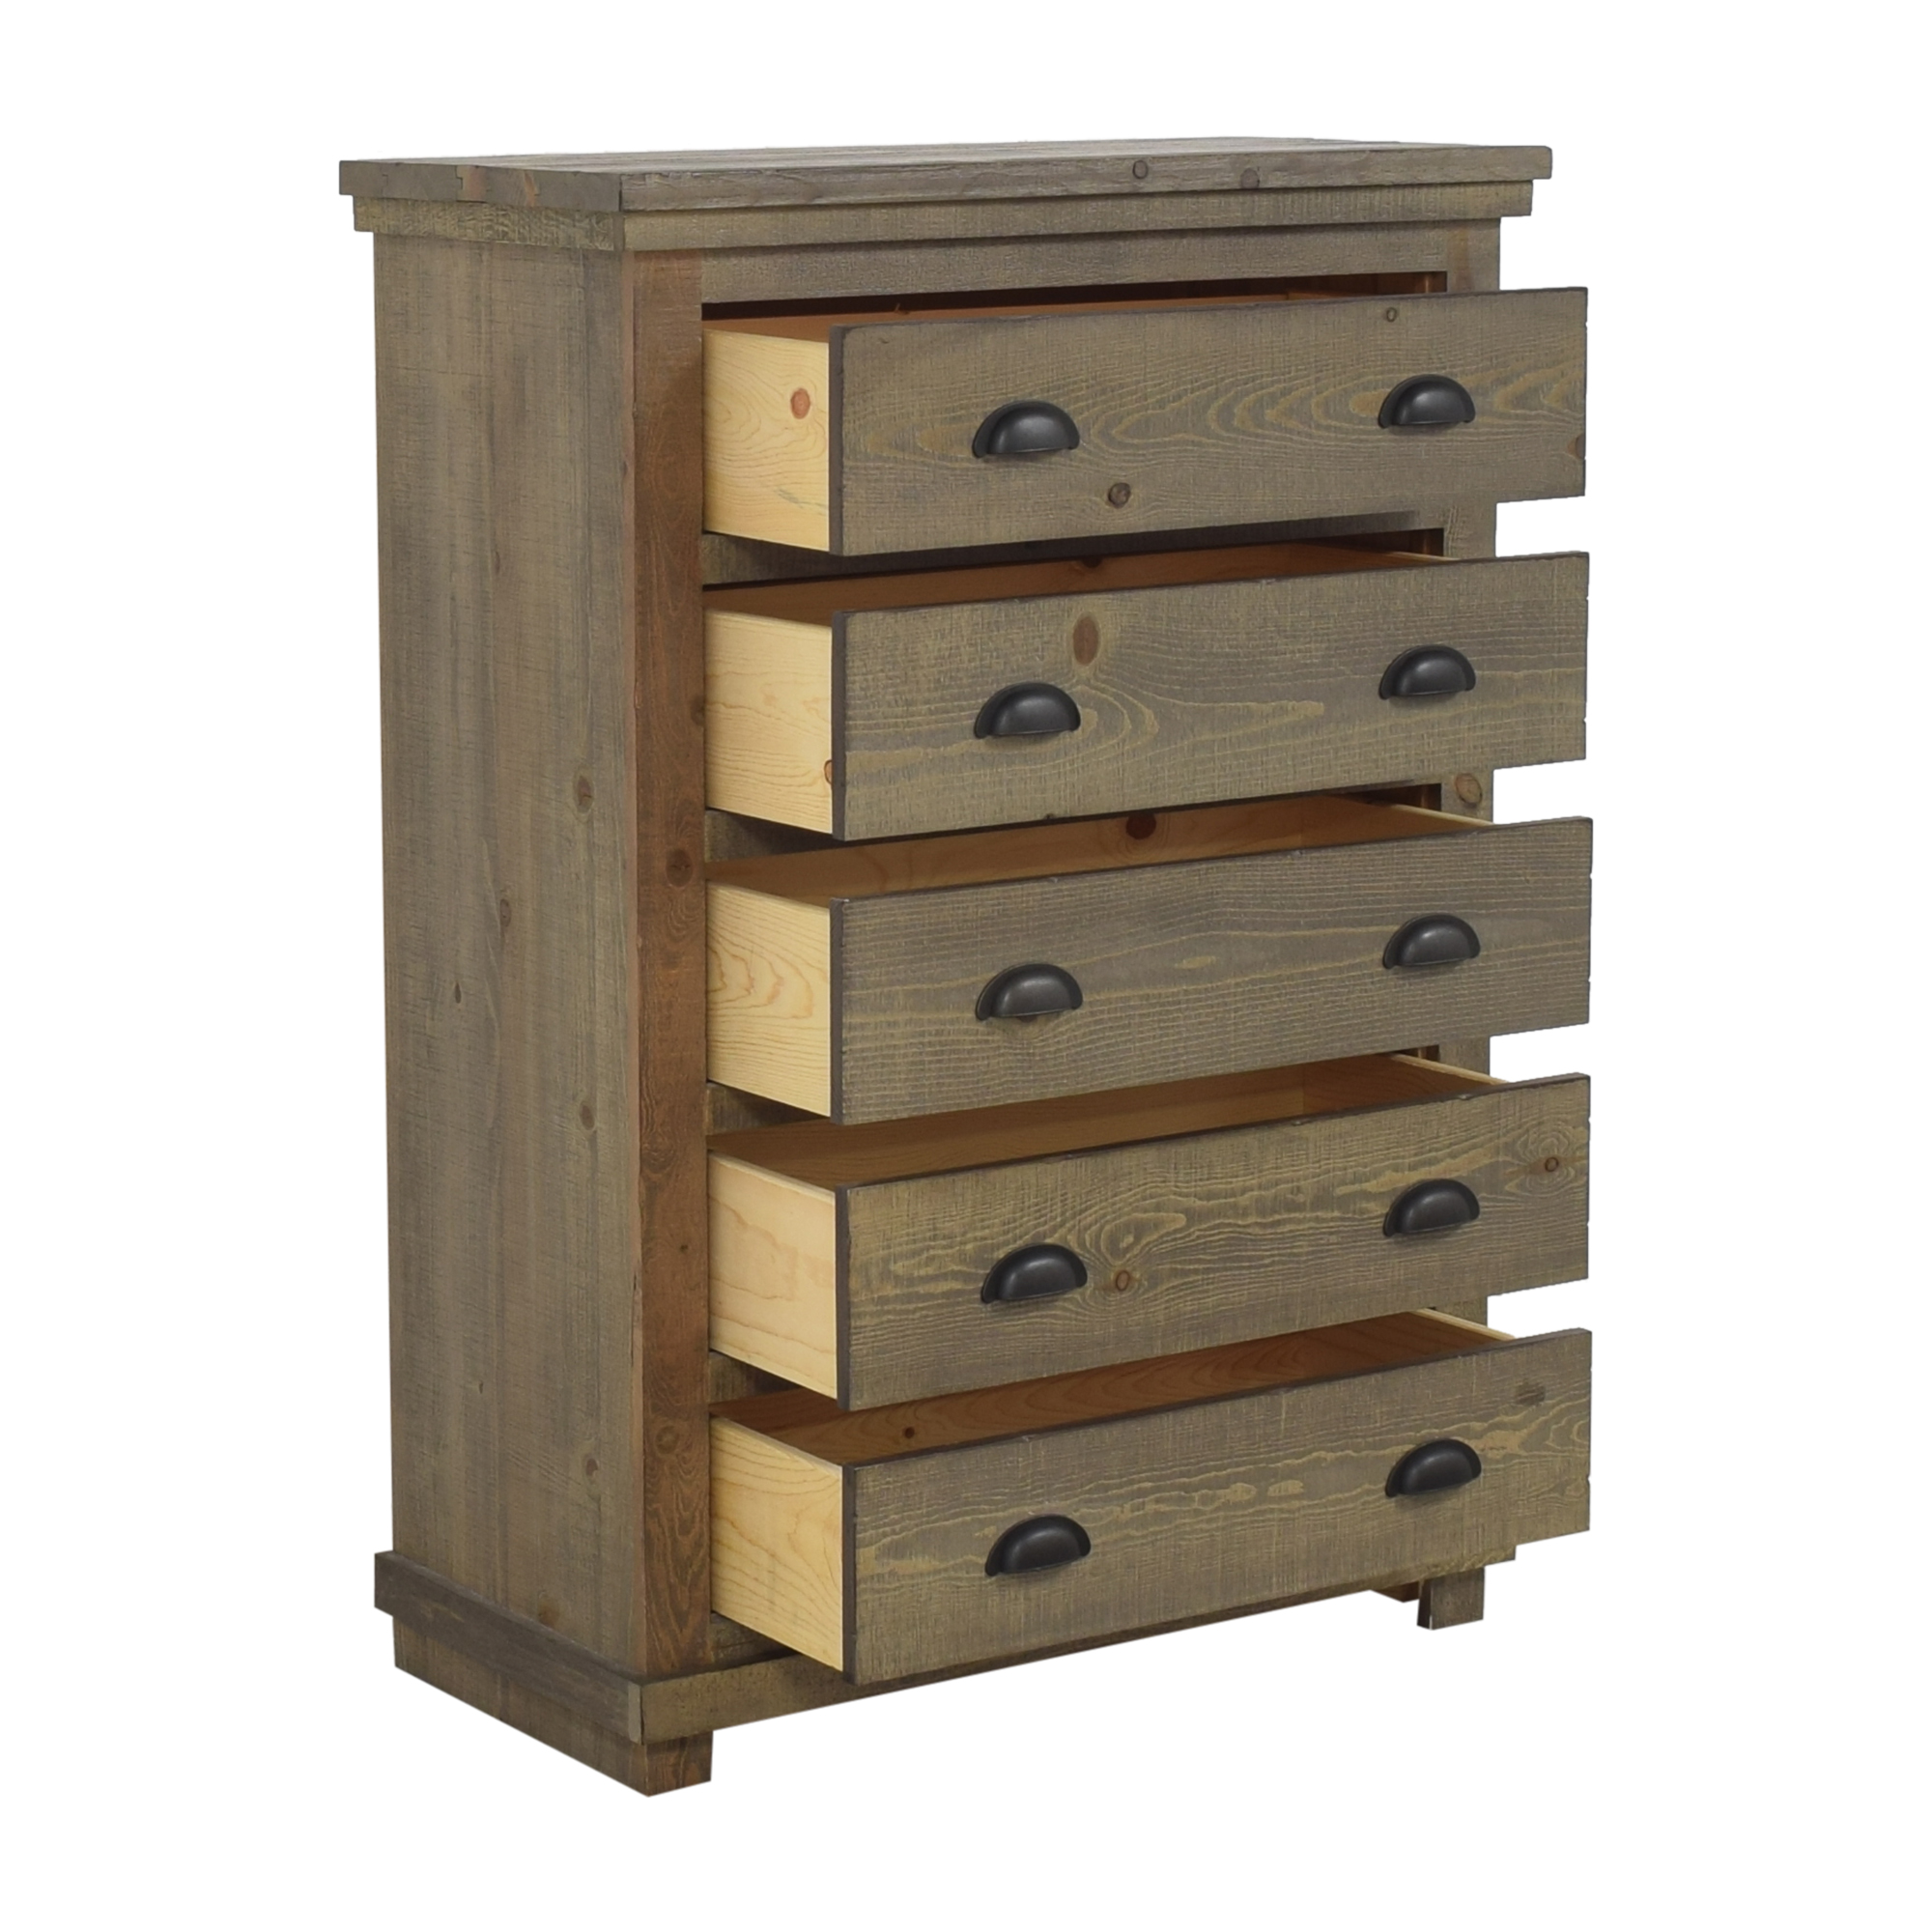 Progressive Furniture Progressive Furniture Willow Five Drawer Chest price